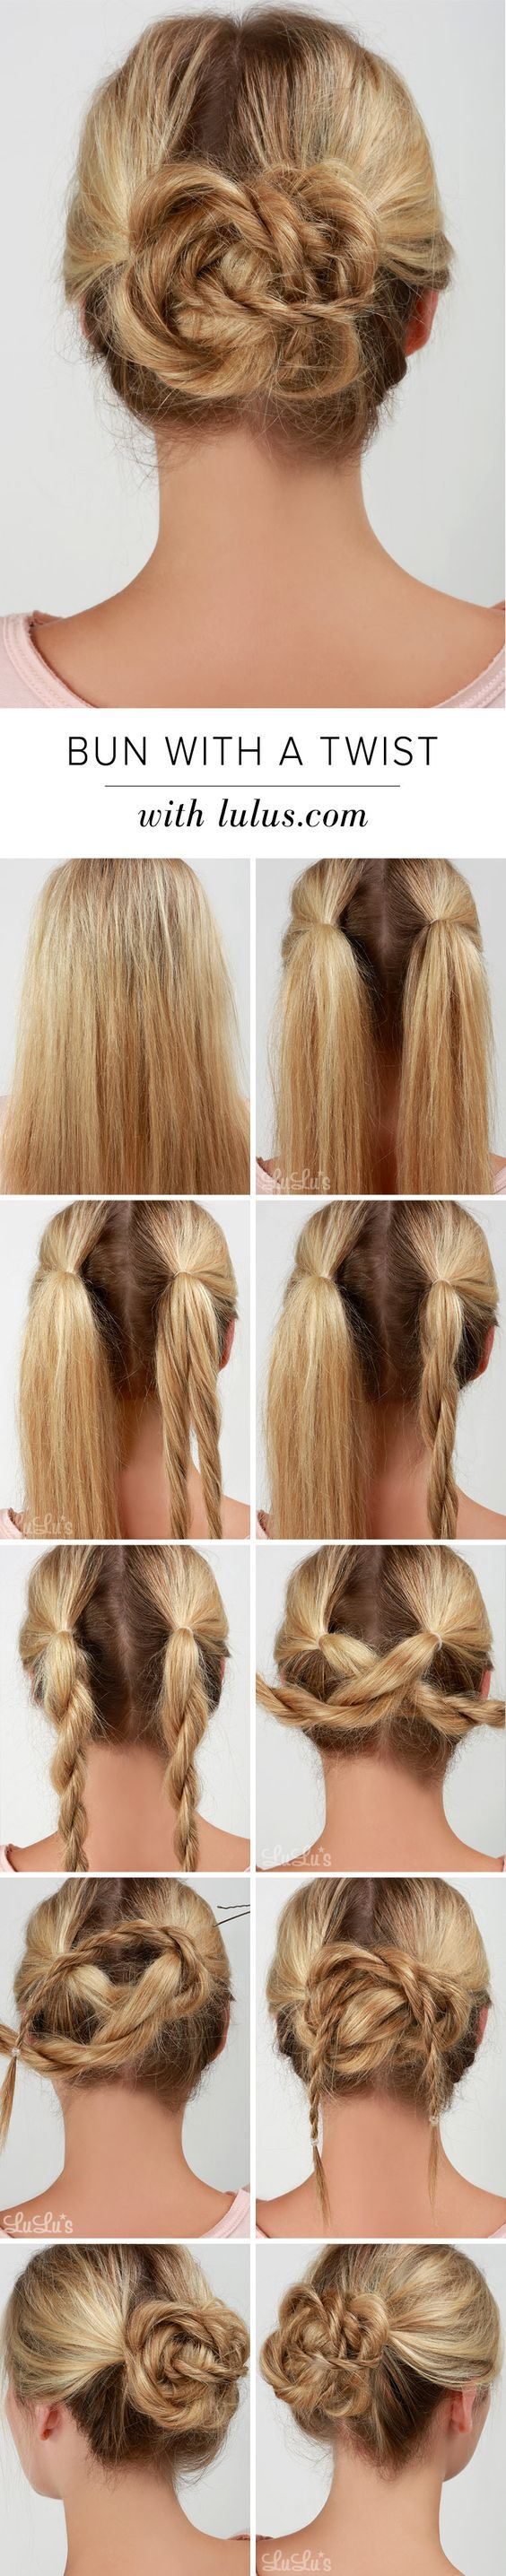 Strange Easy Bun Hairstyles Easy Bun And Bun Hairstyles On Pinterest Hairstyle Inspiration Daily Dogsangcom